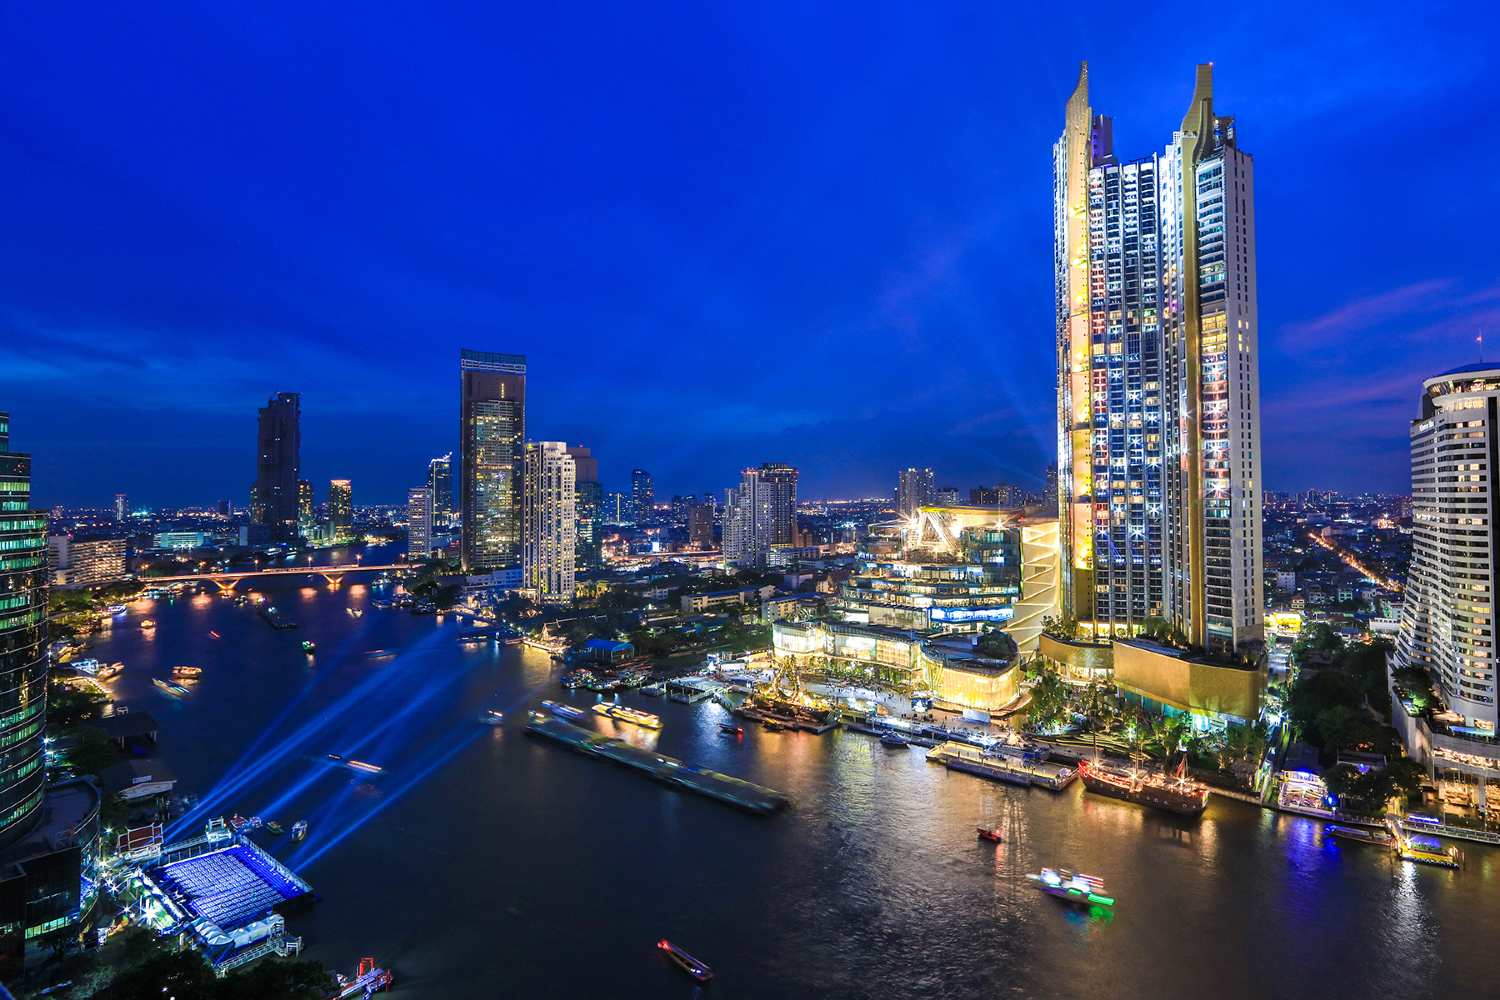 ICONSIAM on the banks of the Chao Phraya River in Bangkok